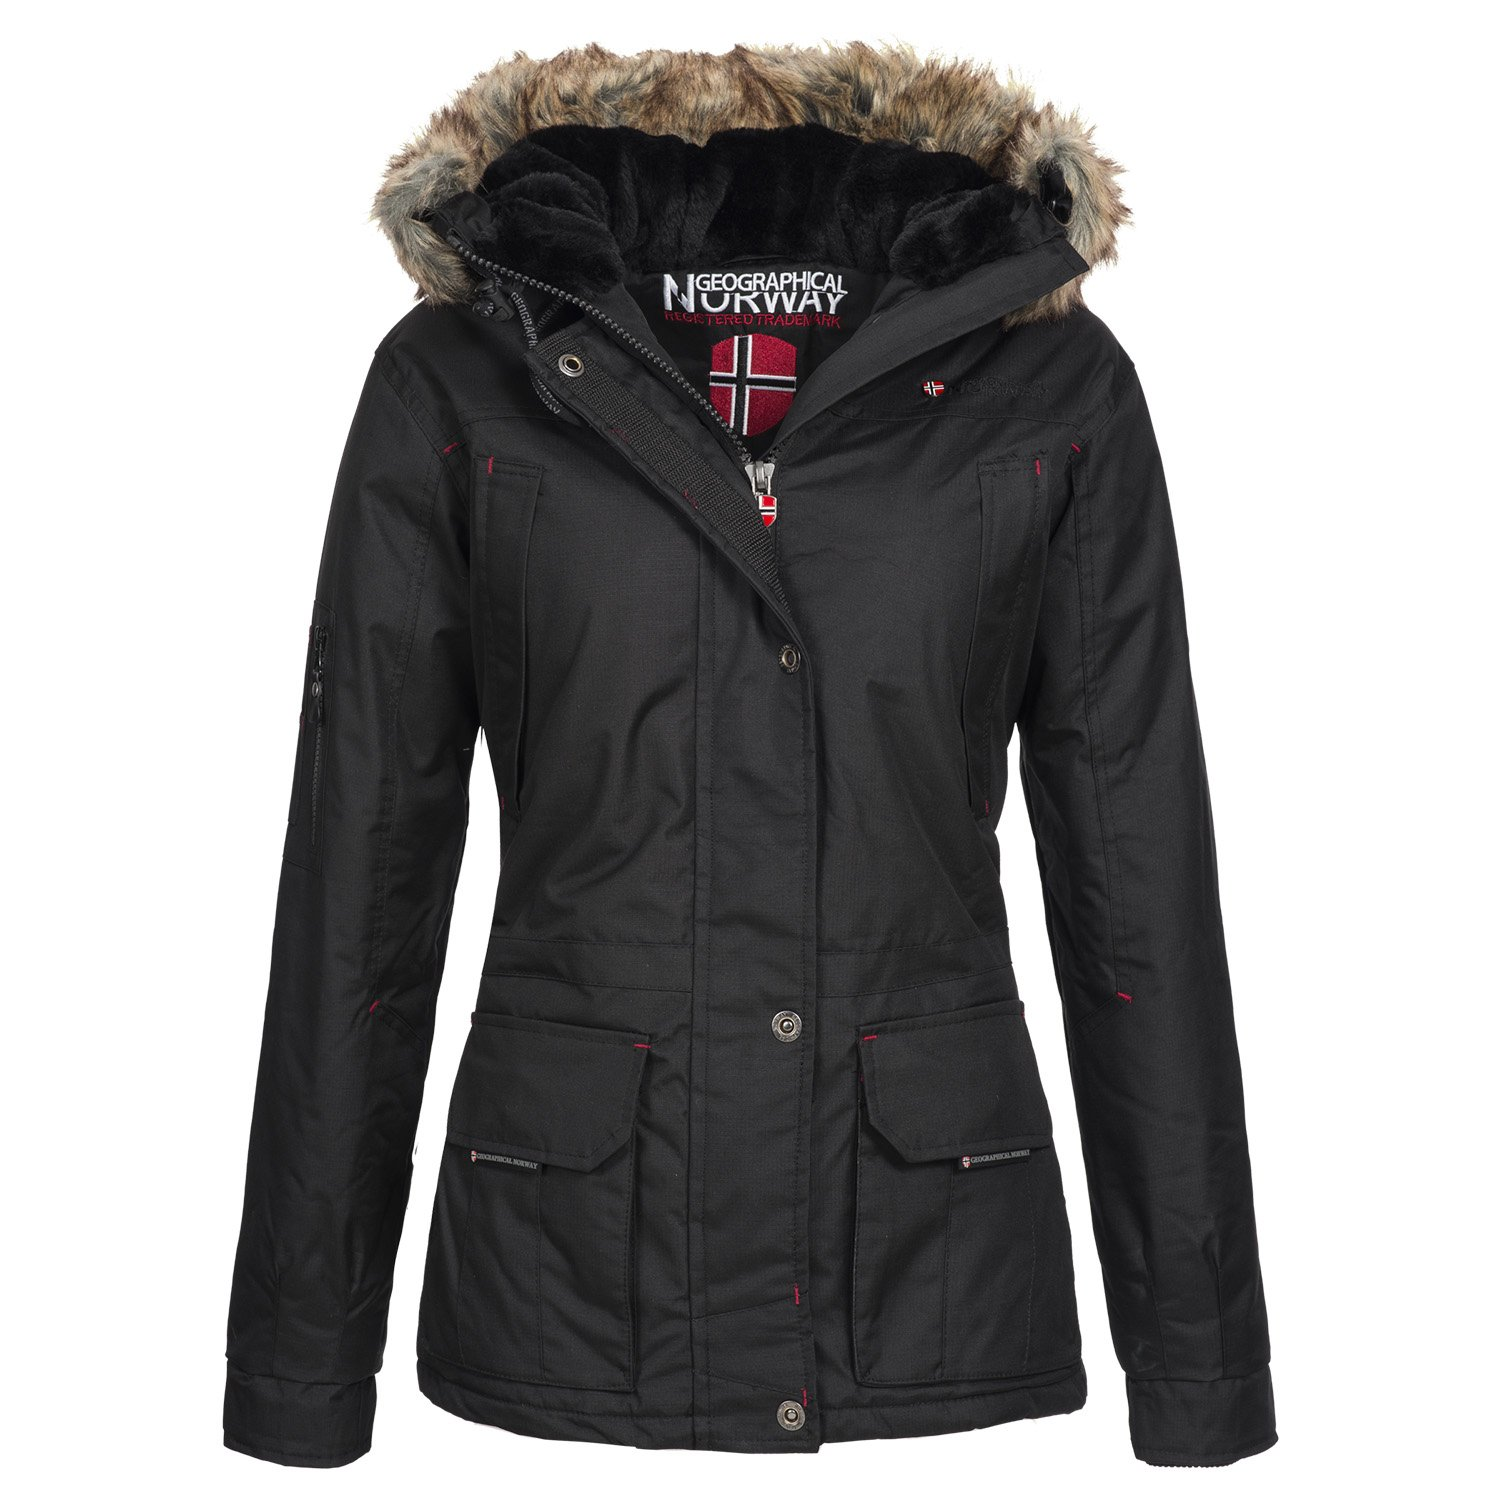 Geographical Norway Atlas Lady 2 Damen Outdoor Winterjacke mit Kunst-Fell Kapuze günstig bestellen